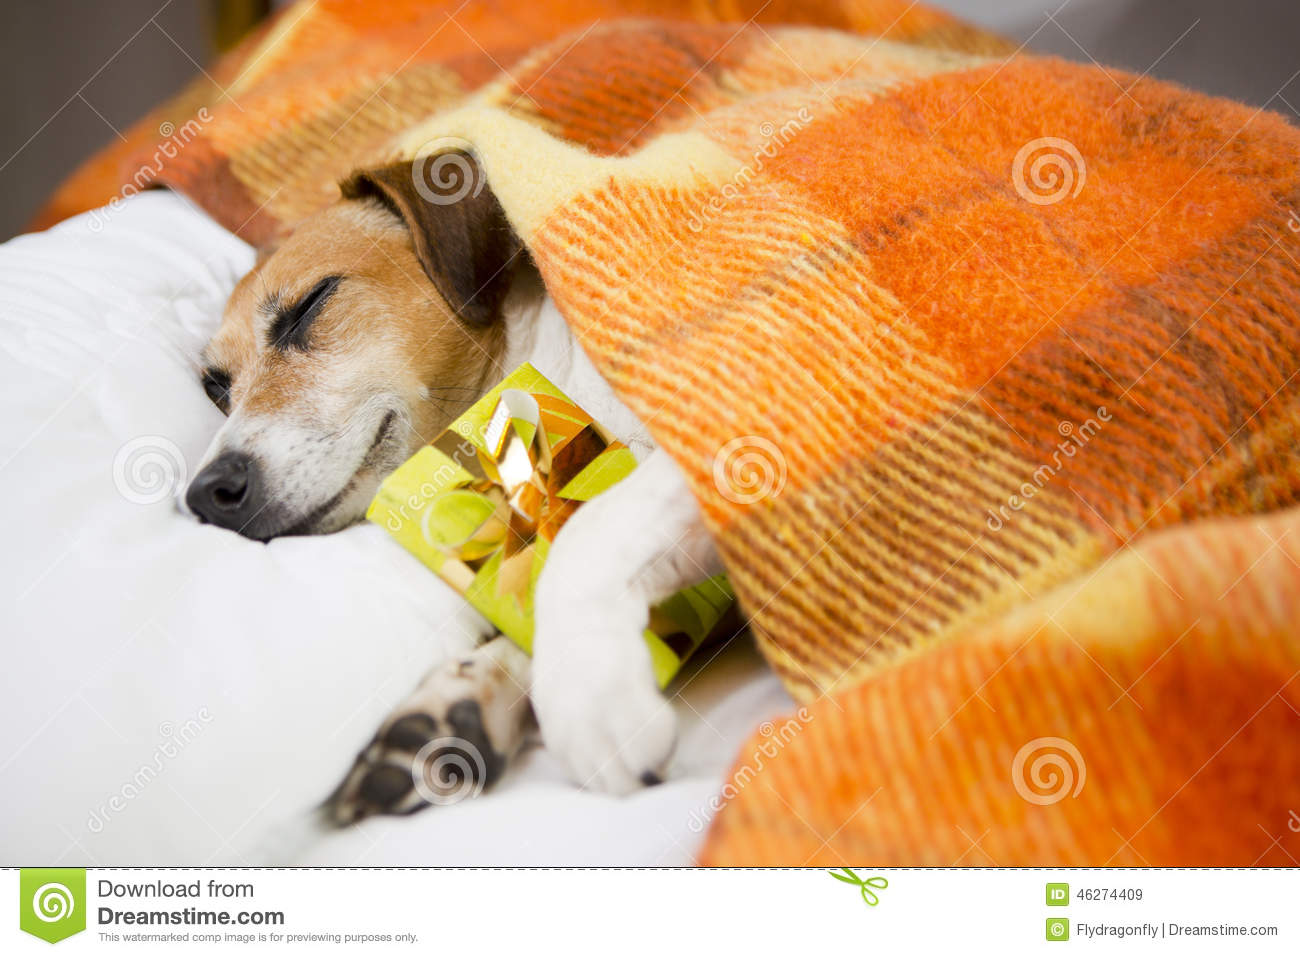 Do It Yourself Home Design: Sleeping Dog With Present Box Gift Stock Photo